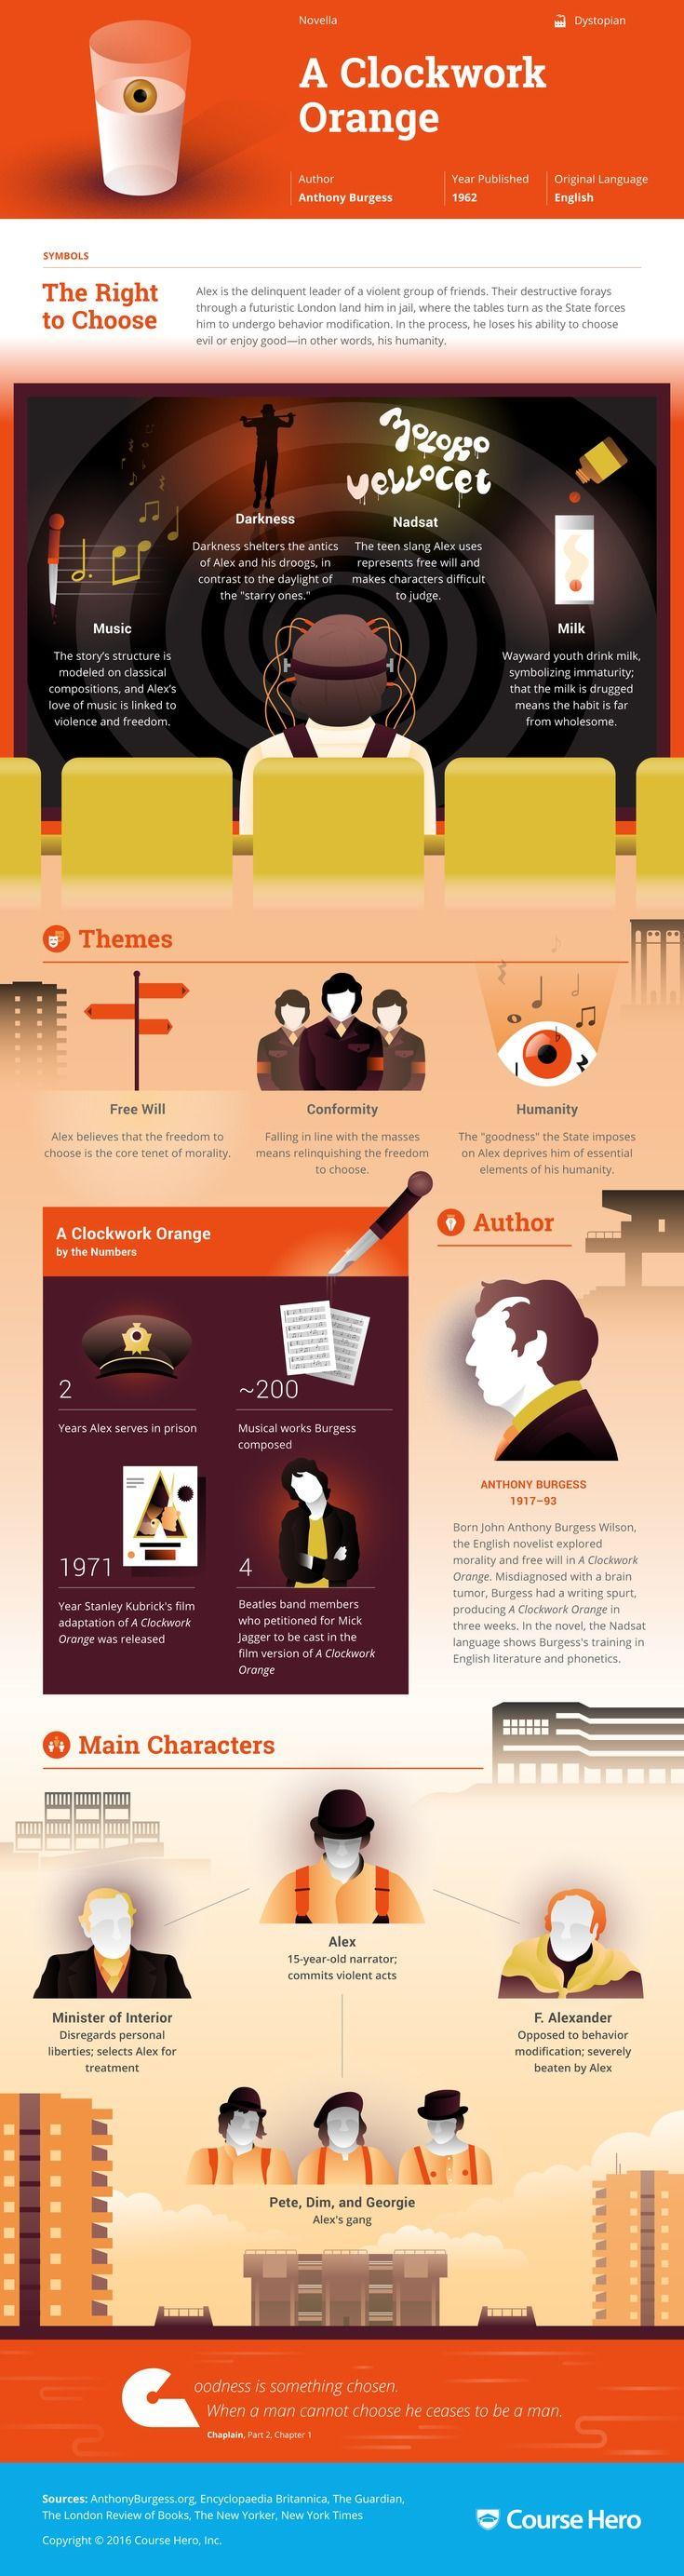 images about literature a clockwork orange study guide for anthony burgess s a clockwork orange including chapter summary character analysis and more learn all about a clockwork orange